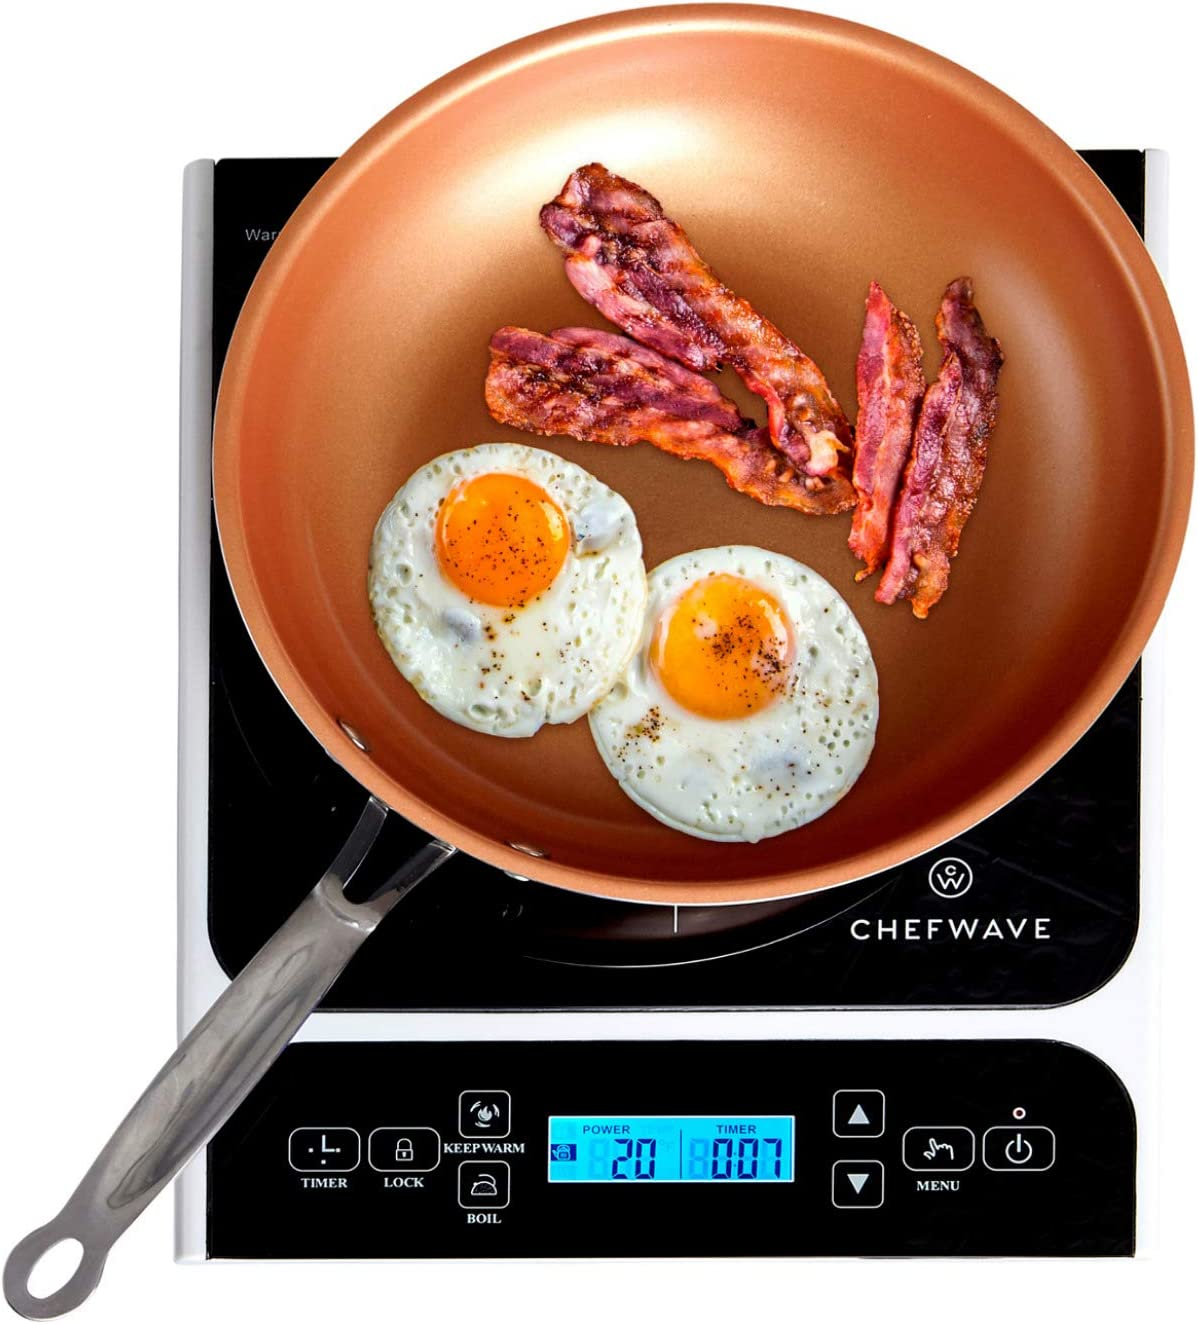 ChefWave CW-IC01 1800W Portable Induction Countertop Burner – Bonus 10 Copper Frying Pan – 20 Power Temp Settings Digital LCD Touch Kitchen Cooktop Electric Cooker – Energy Efficient, Safety Lock